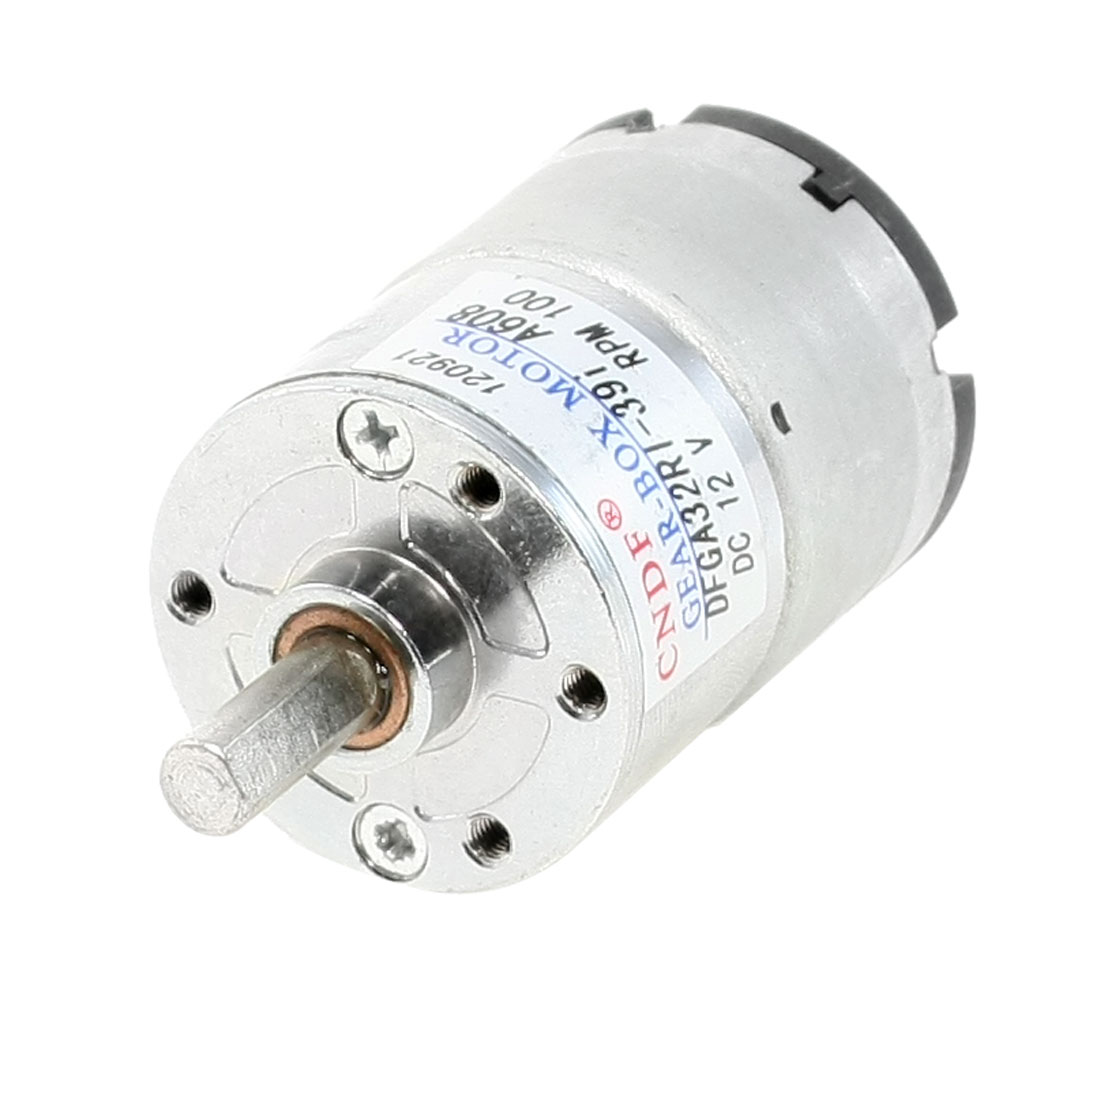 100RPM 12VDC 2P 6mm Shaft Diameter Electric Geared Box Motor